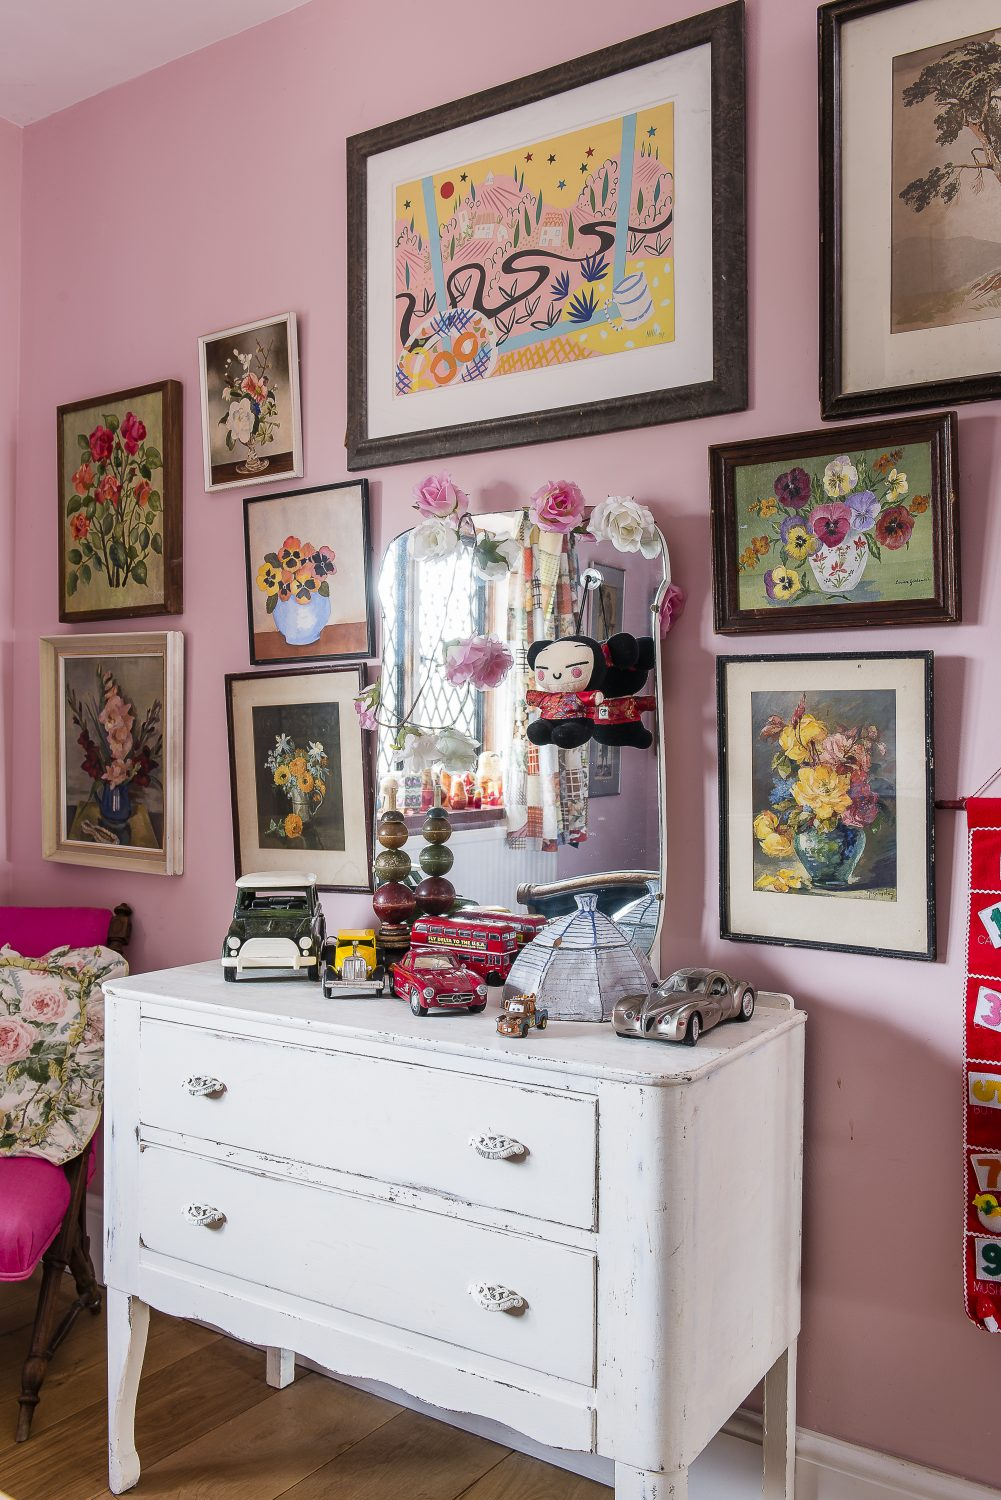 The dressing table in the grandchildren's room